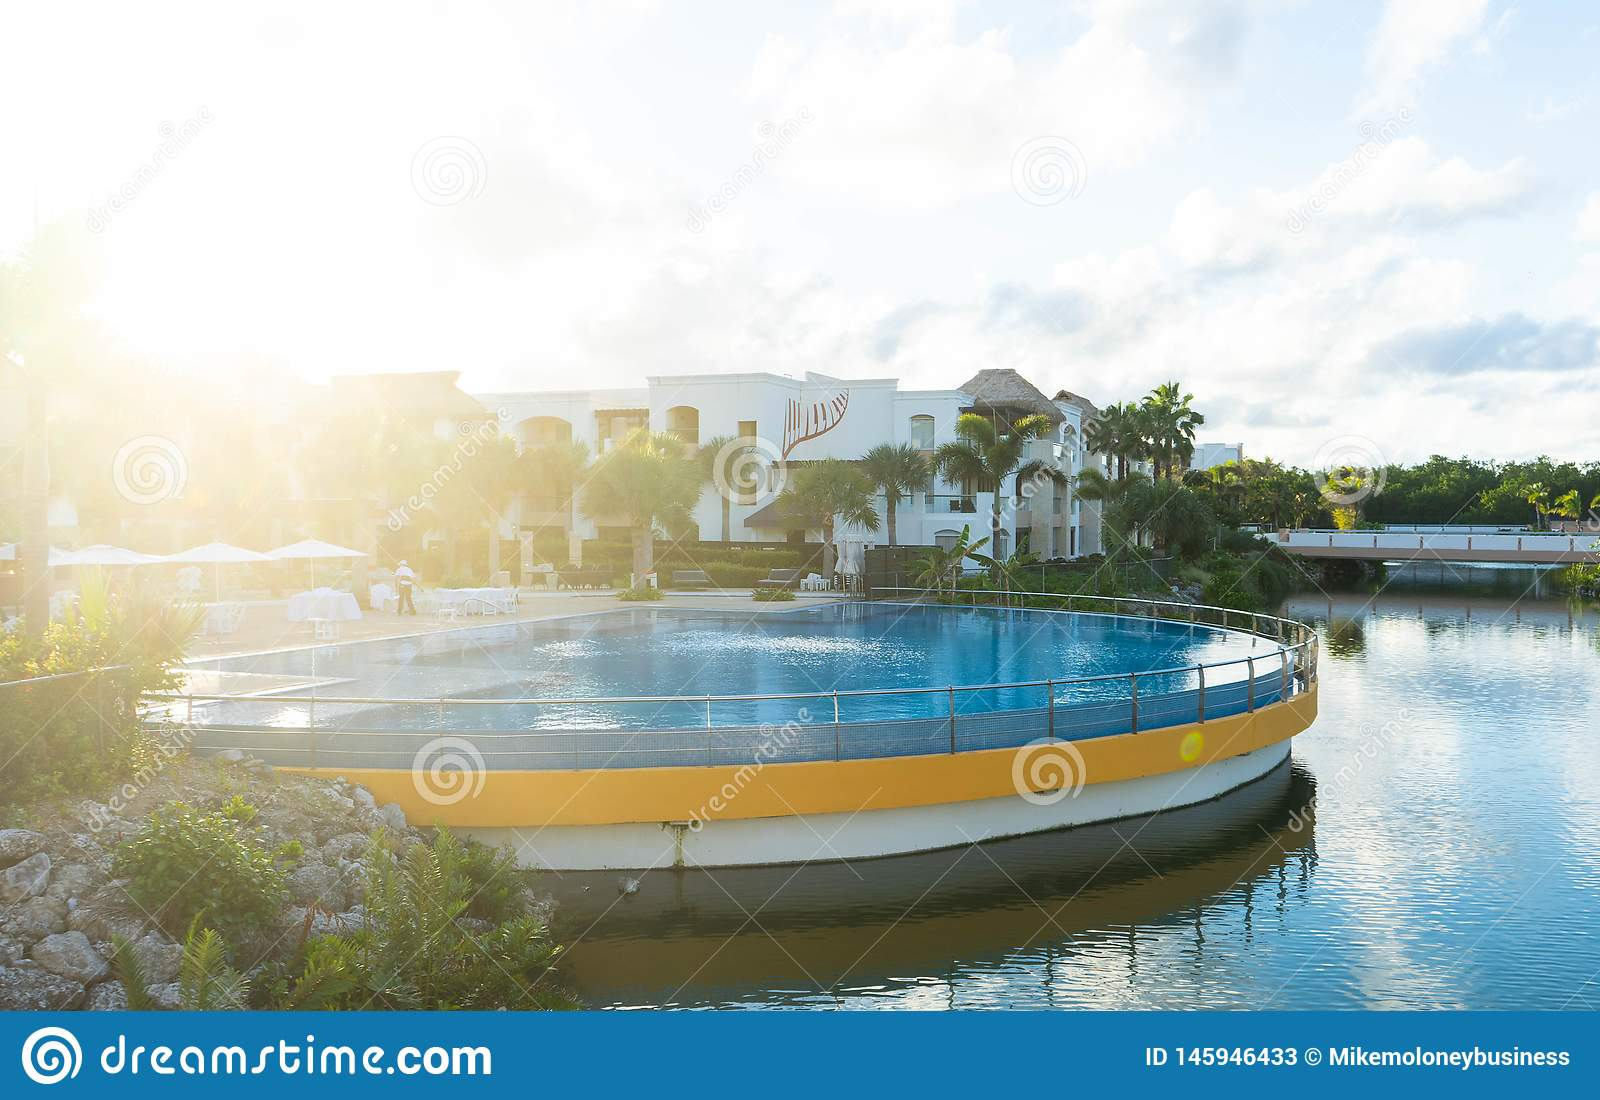 Recurso do hard rock e hotel, Punta Cana